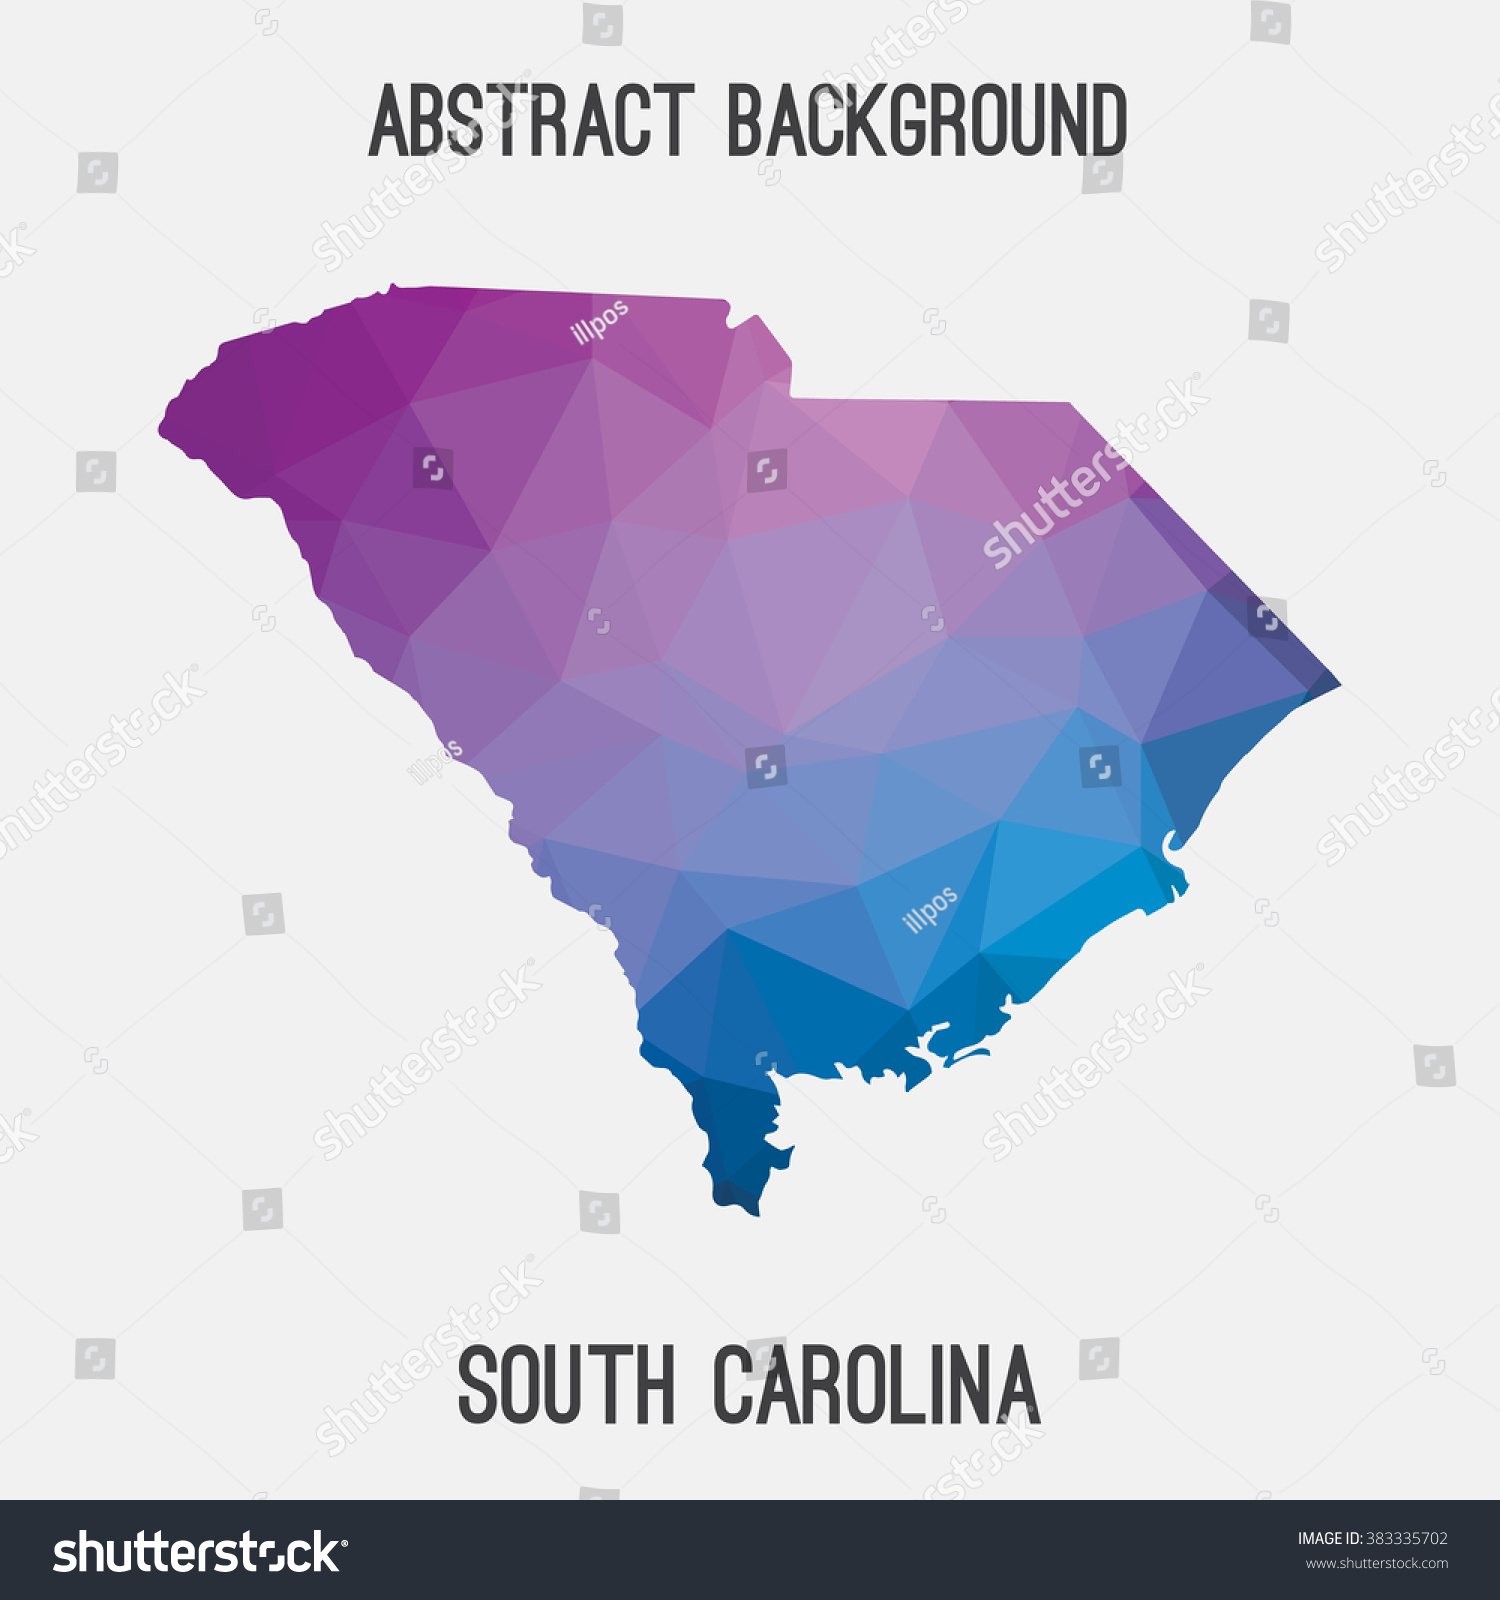 South Carolina State Map Geometric Polygonal Stock Vector (Royalty ...